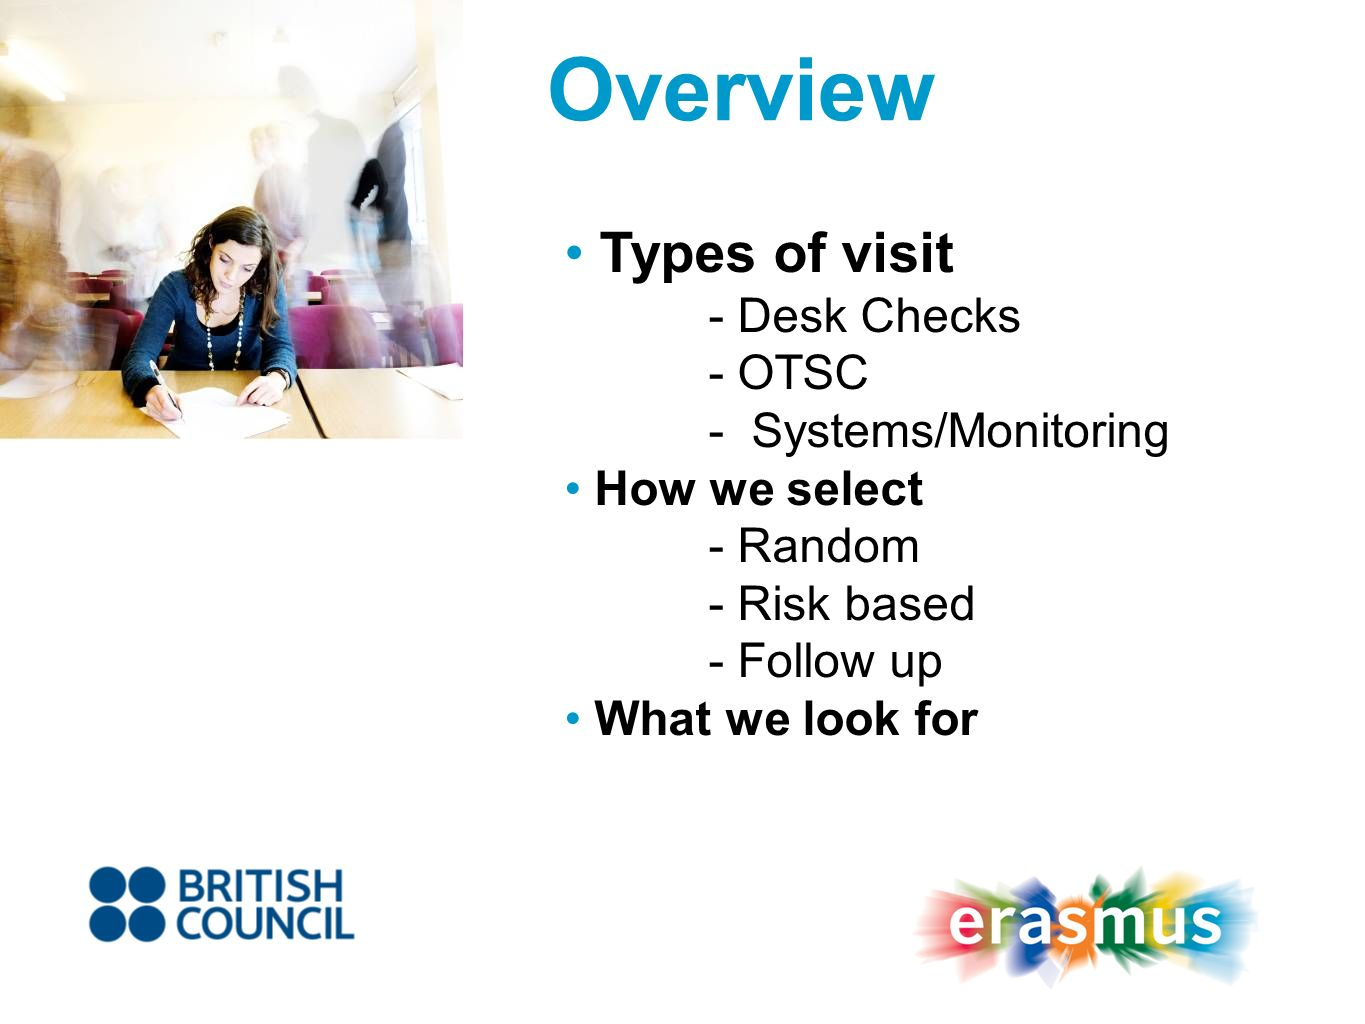 Types of visit - Desk Checks - OTSC - Systems/Monitoring How we select - Random - Risk based - Follow up What we look for Overview